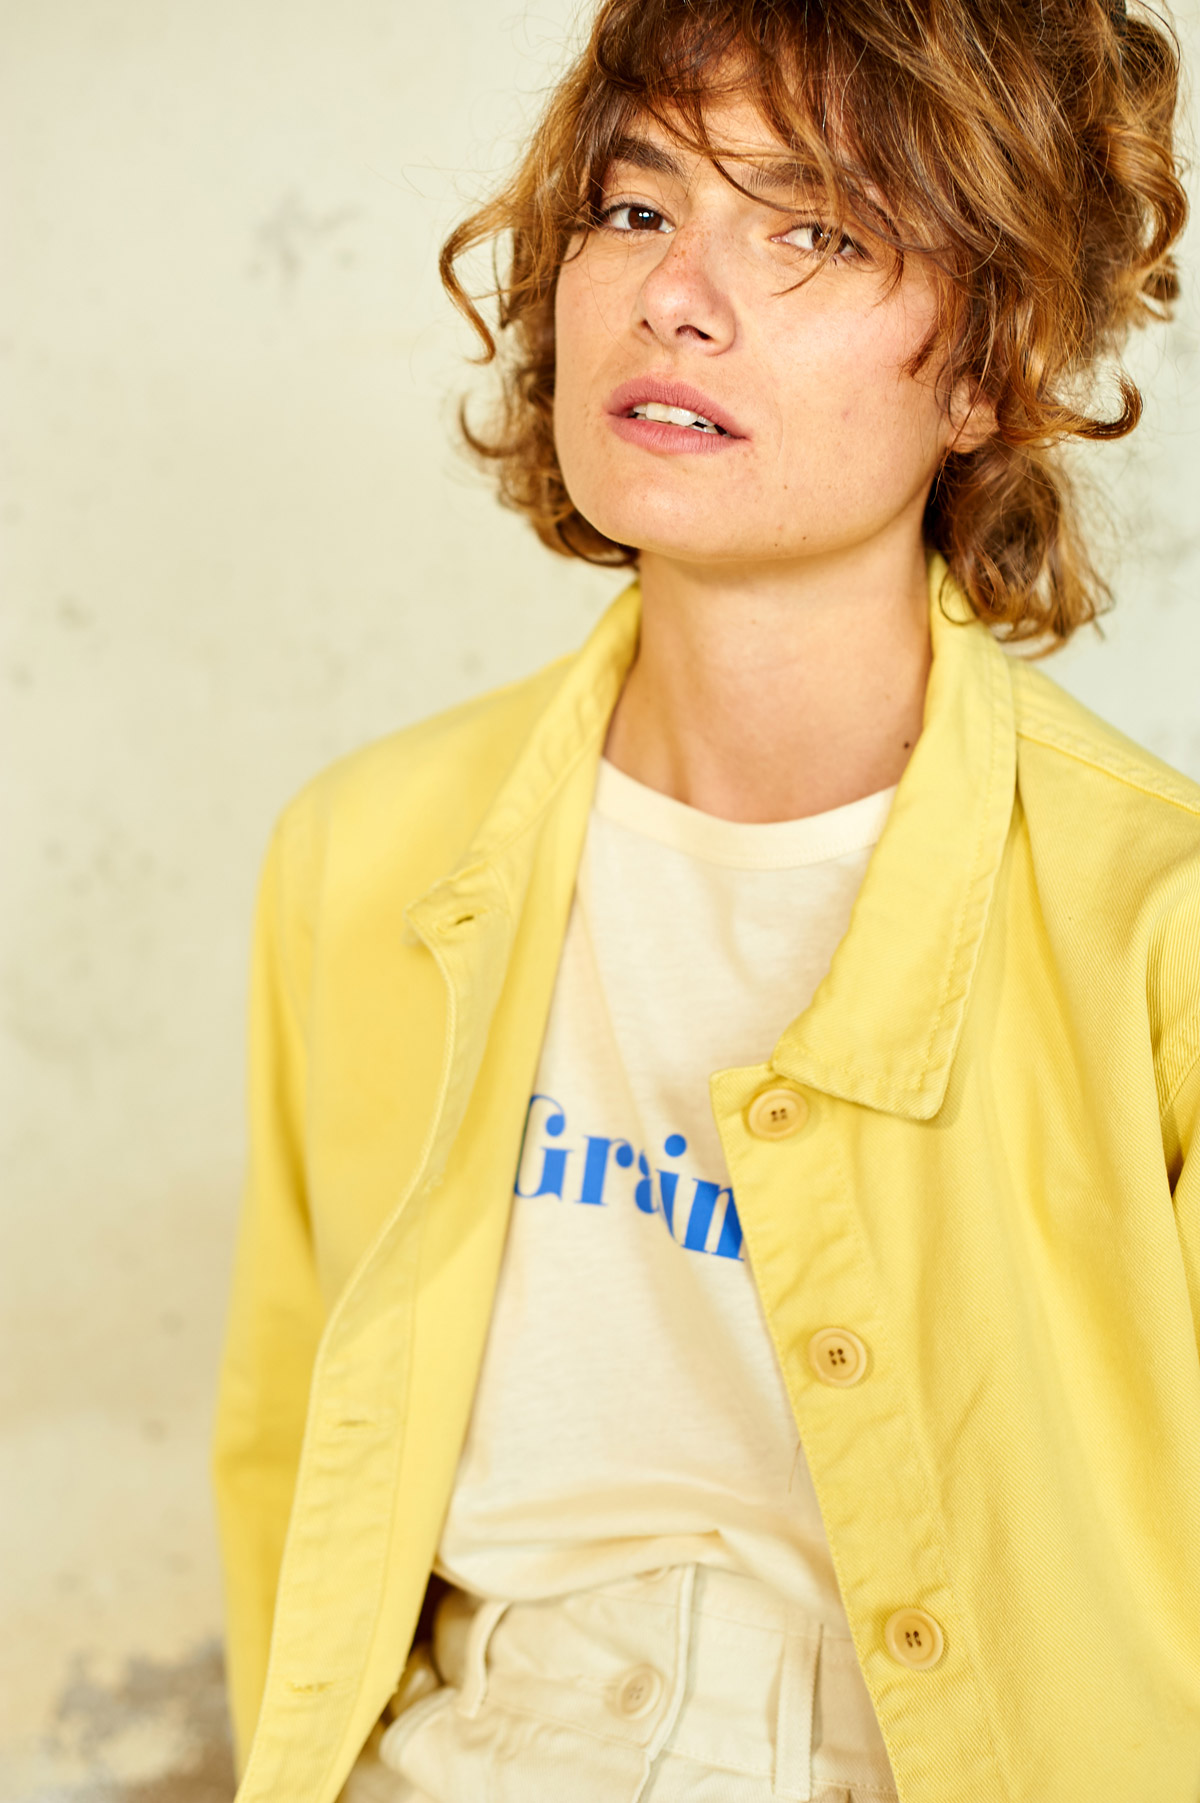 Graine Lookbook SS20 - Collection Les Graines - Photo Melvin Israel - Modèle Justine Mothe